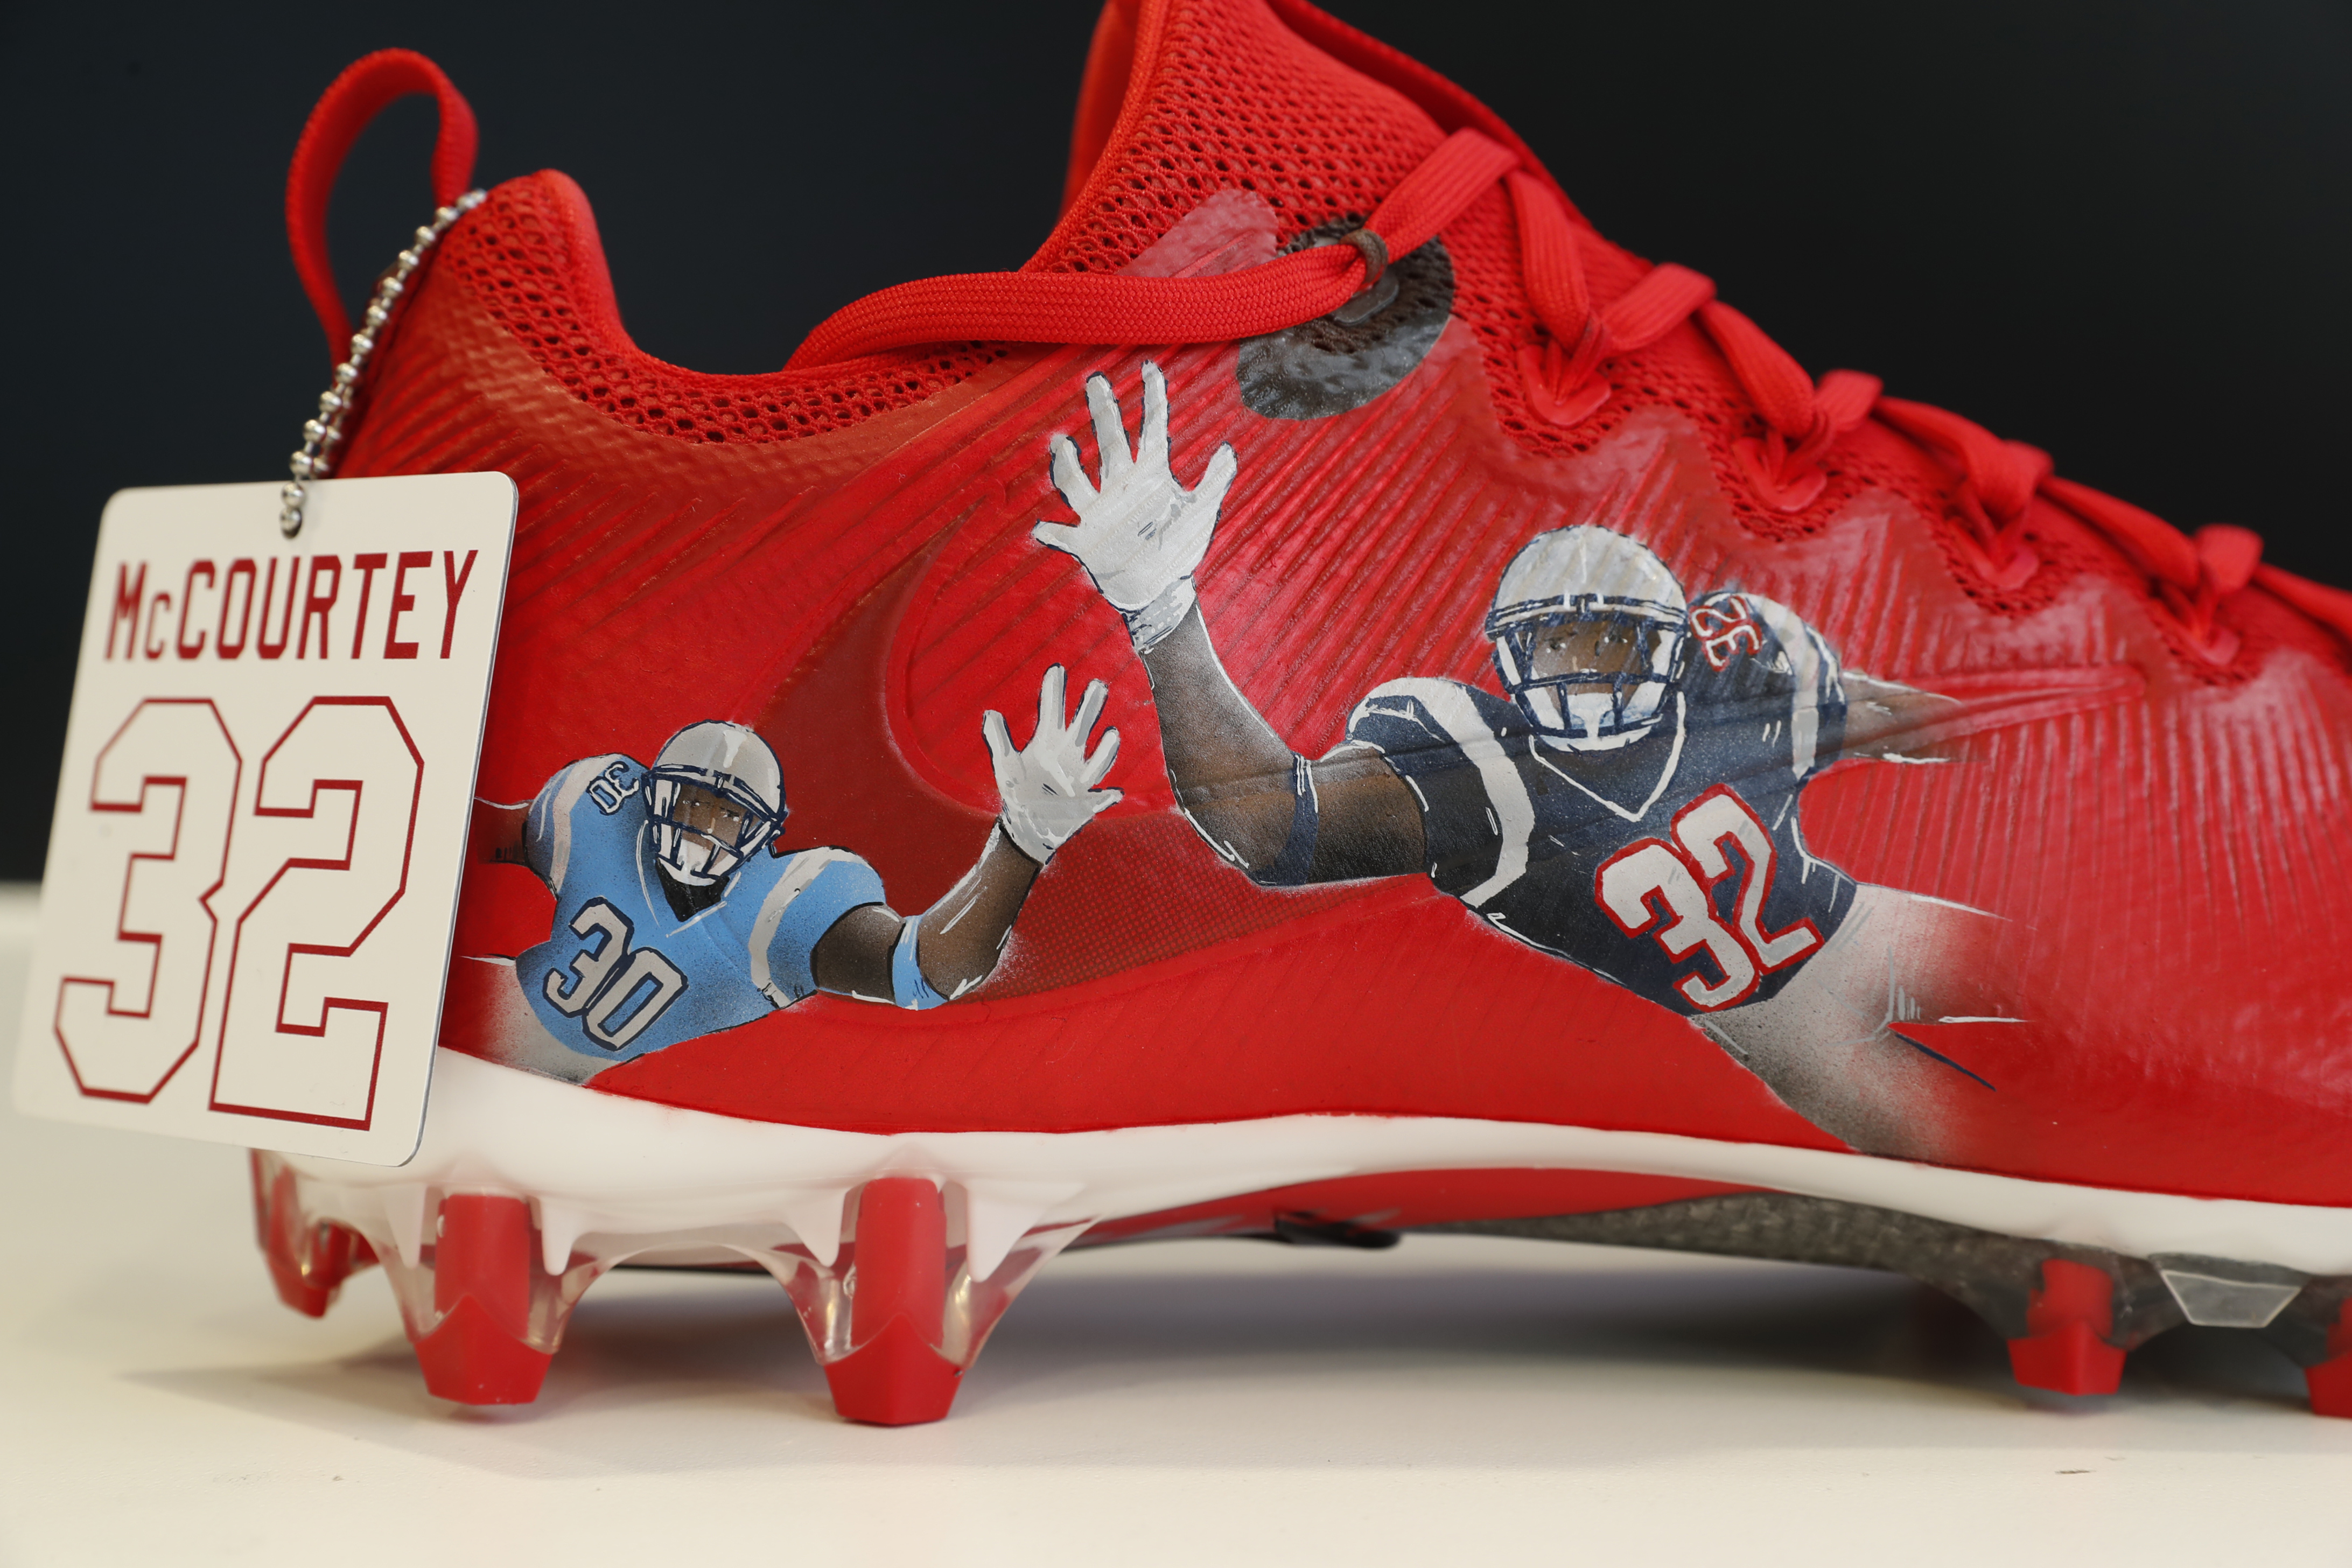 Identical twin brothers Devin and Jason McCourty'a Sickle Cell made at Sole Flight in the Walden Galleria Mall for the NFL's Cleats for a Cause on Tuesday, Nov. 29, 2016.Devin plays for the New England Patriots while Jason plays for the Tennessee Titan(Harry Scull Jr./Buffalo News)